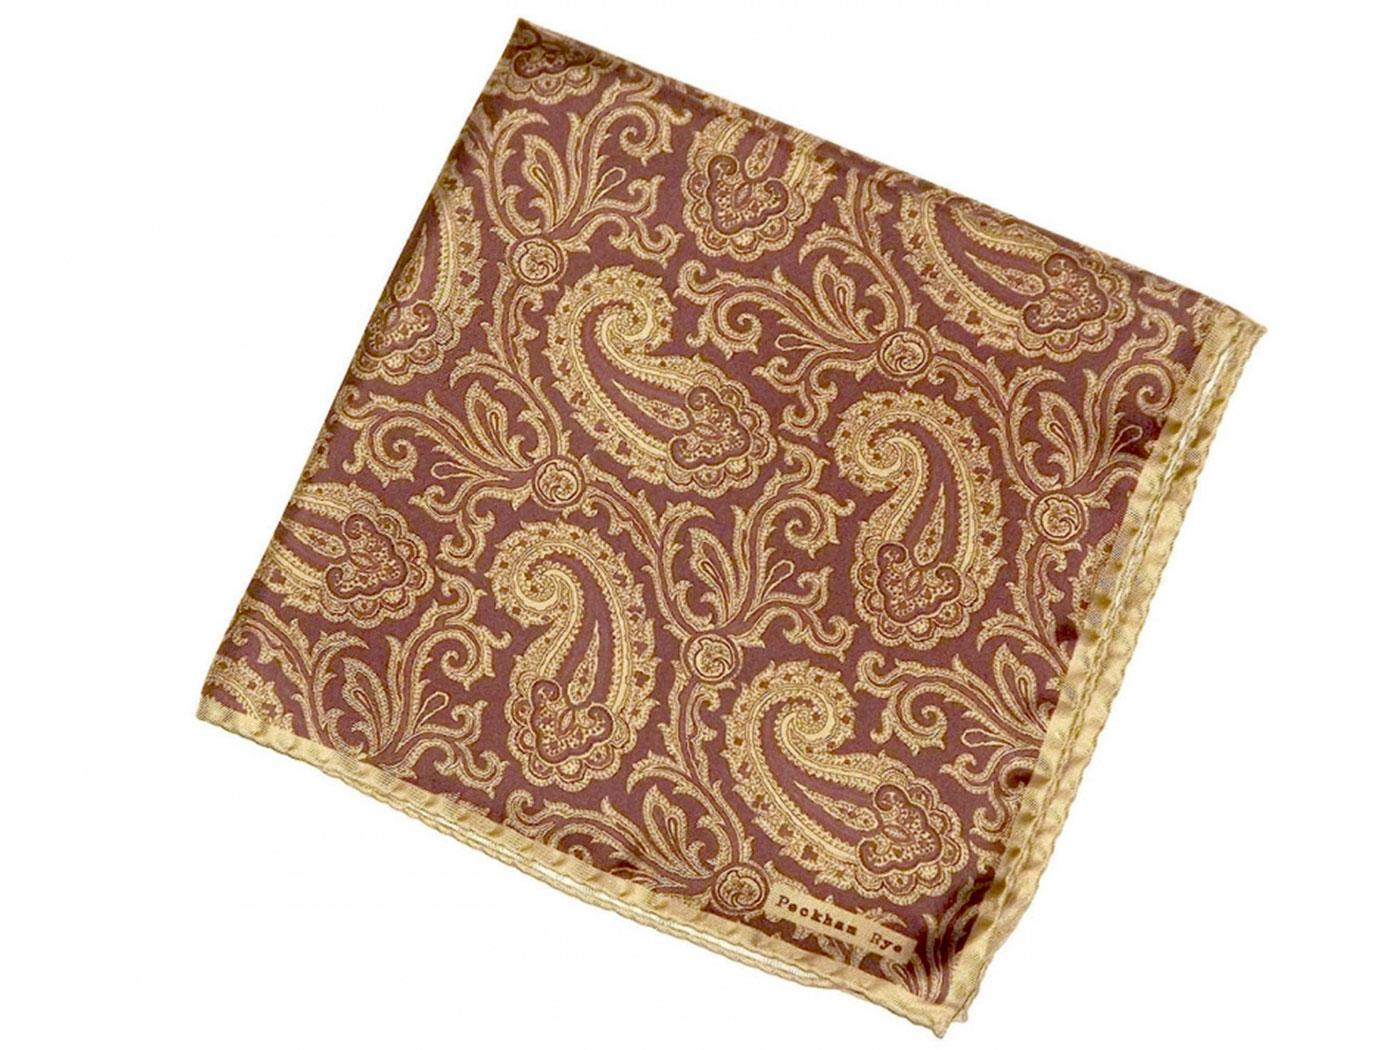 PECKHAM RYE Mod Large Bordo Paisley Pocket Square